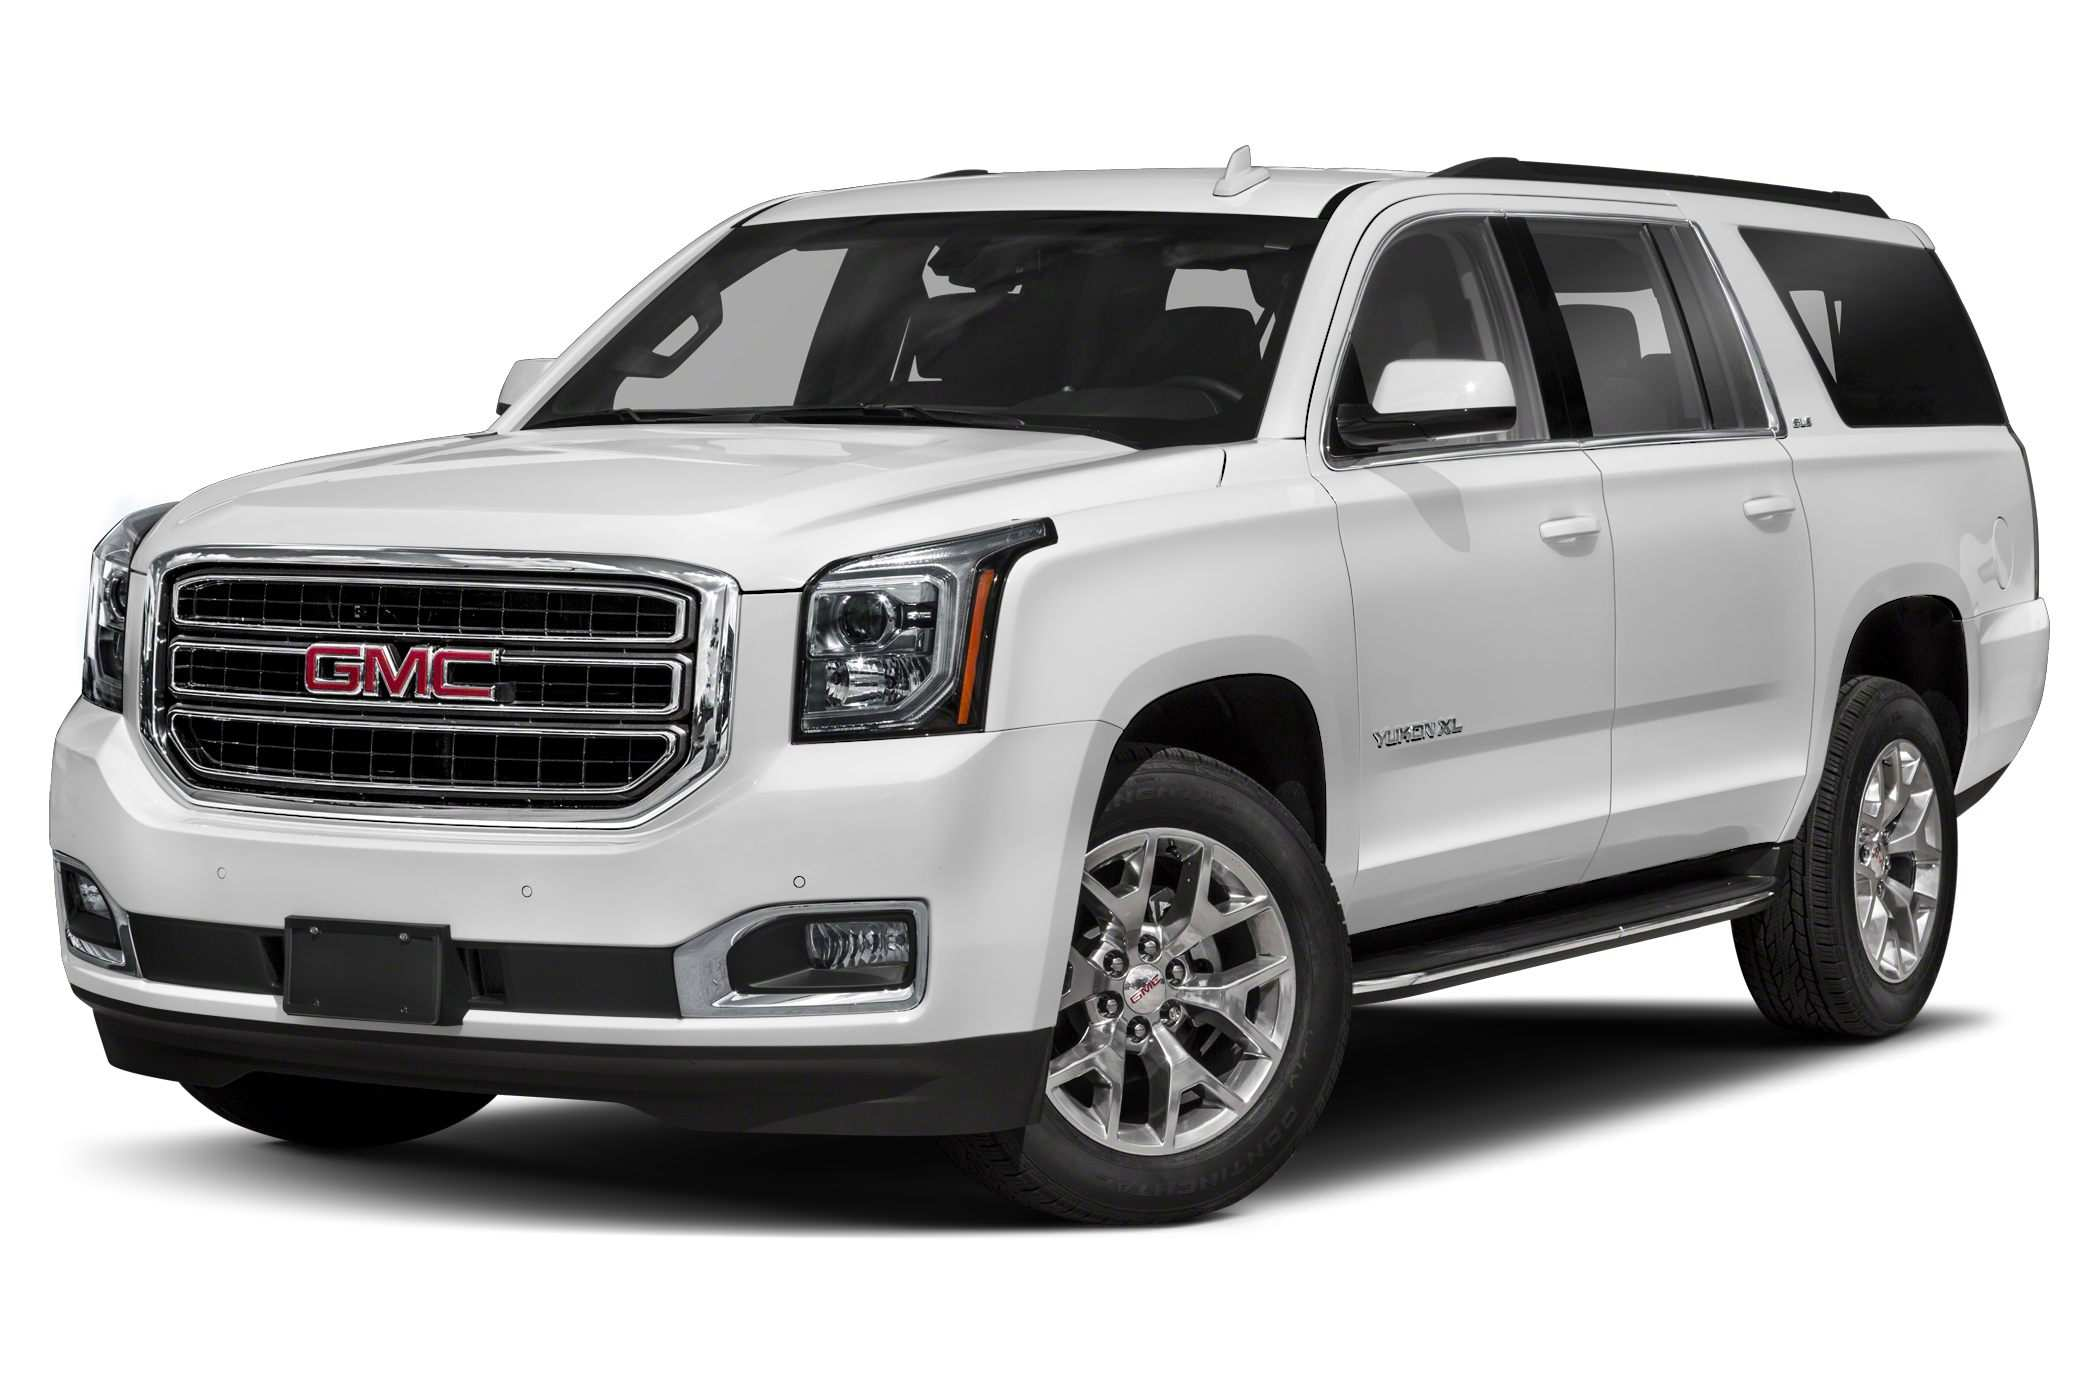 98 All New 2019 GMC Yukon Denali Xl Price Design And Review